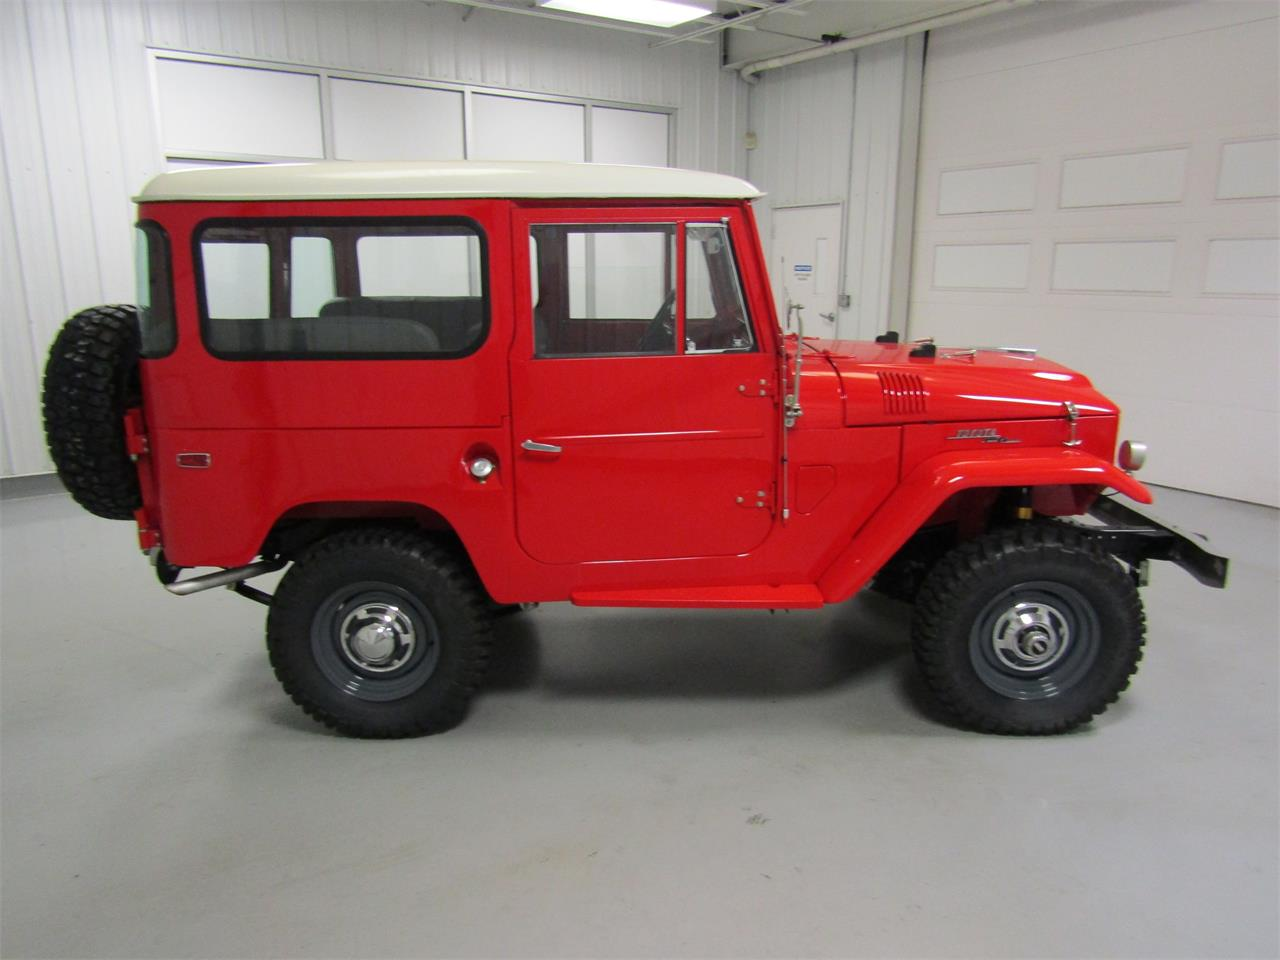 1969 toyota land cruiser fj for sale classiccars com cc 1183804large picture of 1969 toyota land cruiser fj located in christiansburg virginia offered by duncan imports